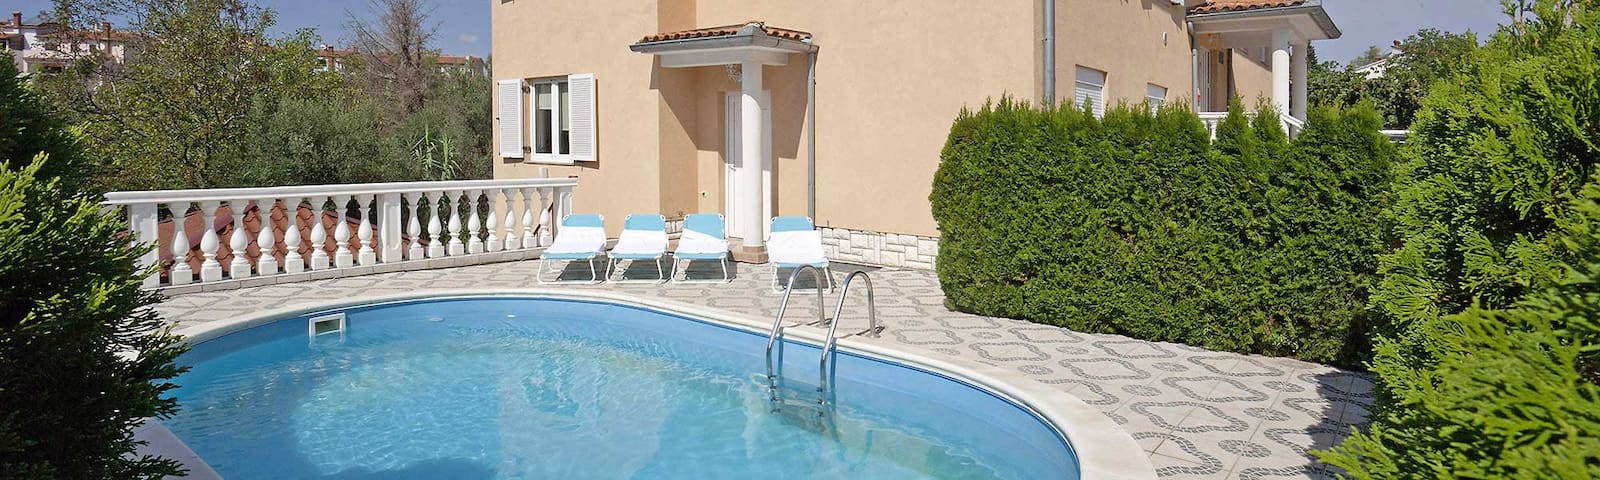 Lovely Flat with swimming pool near beach